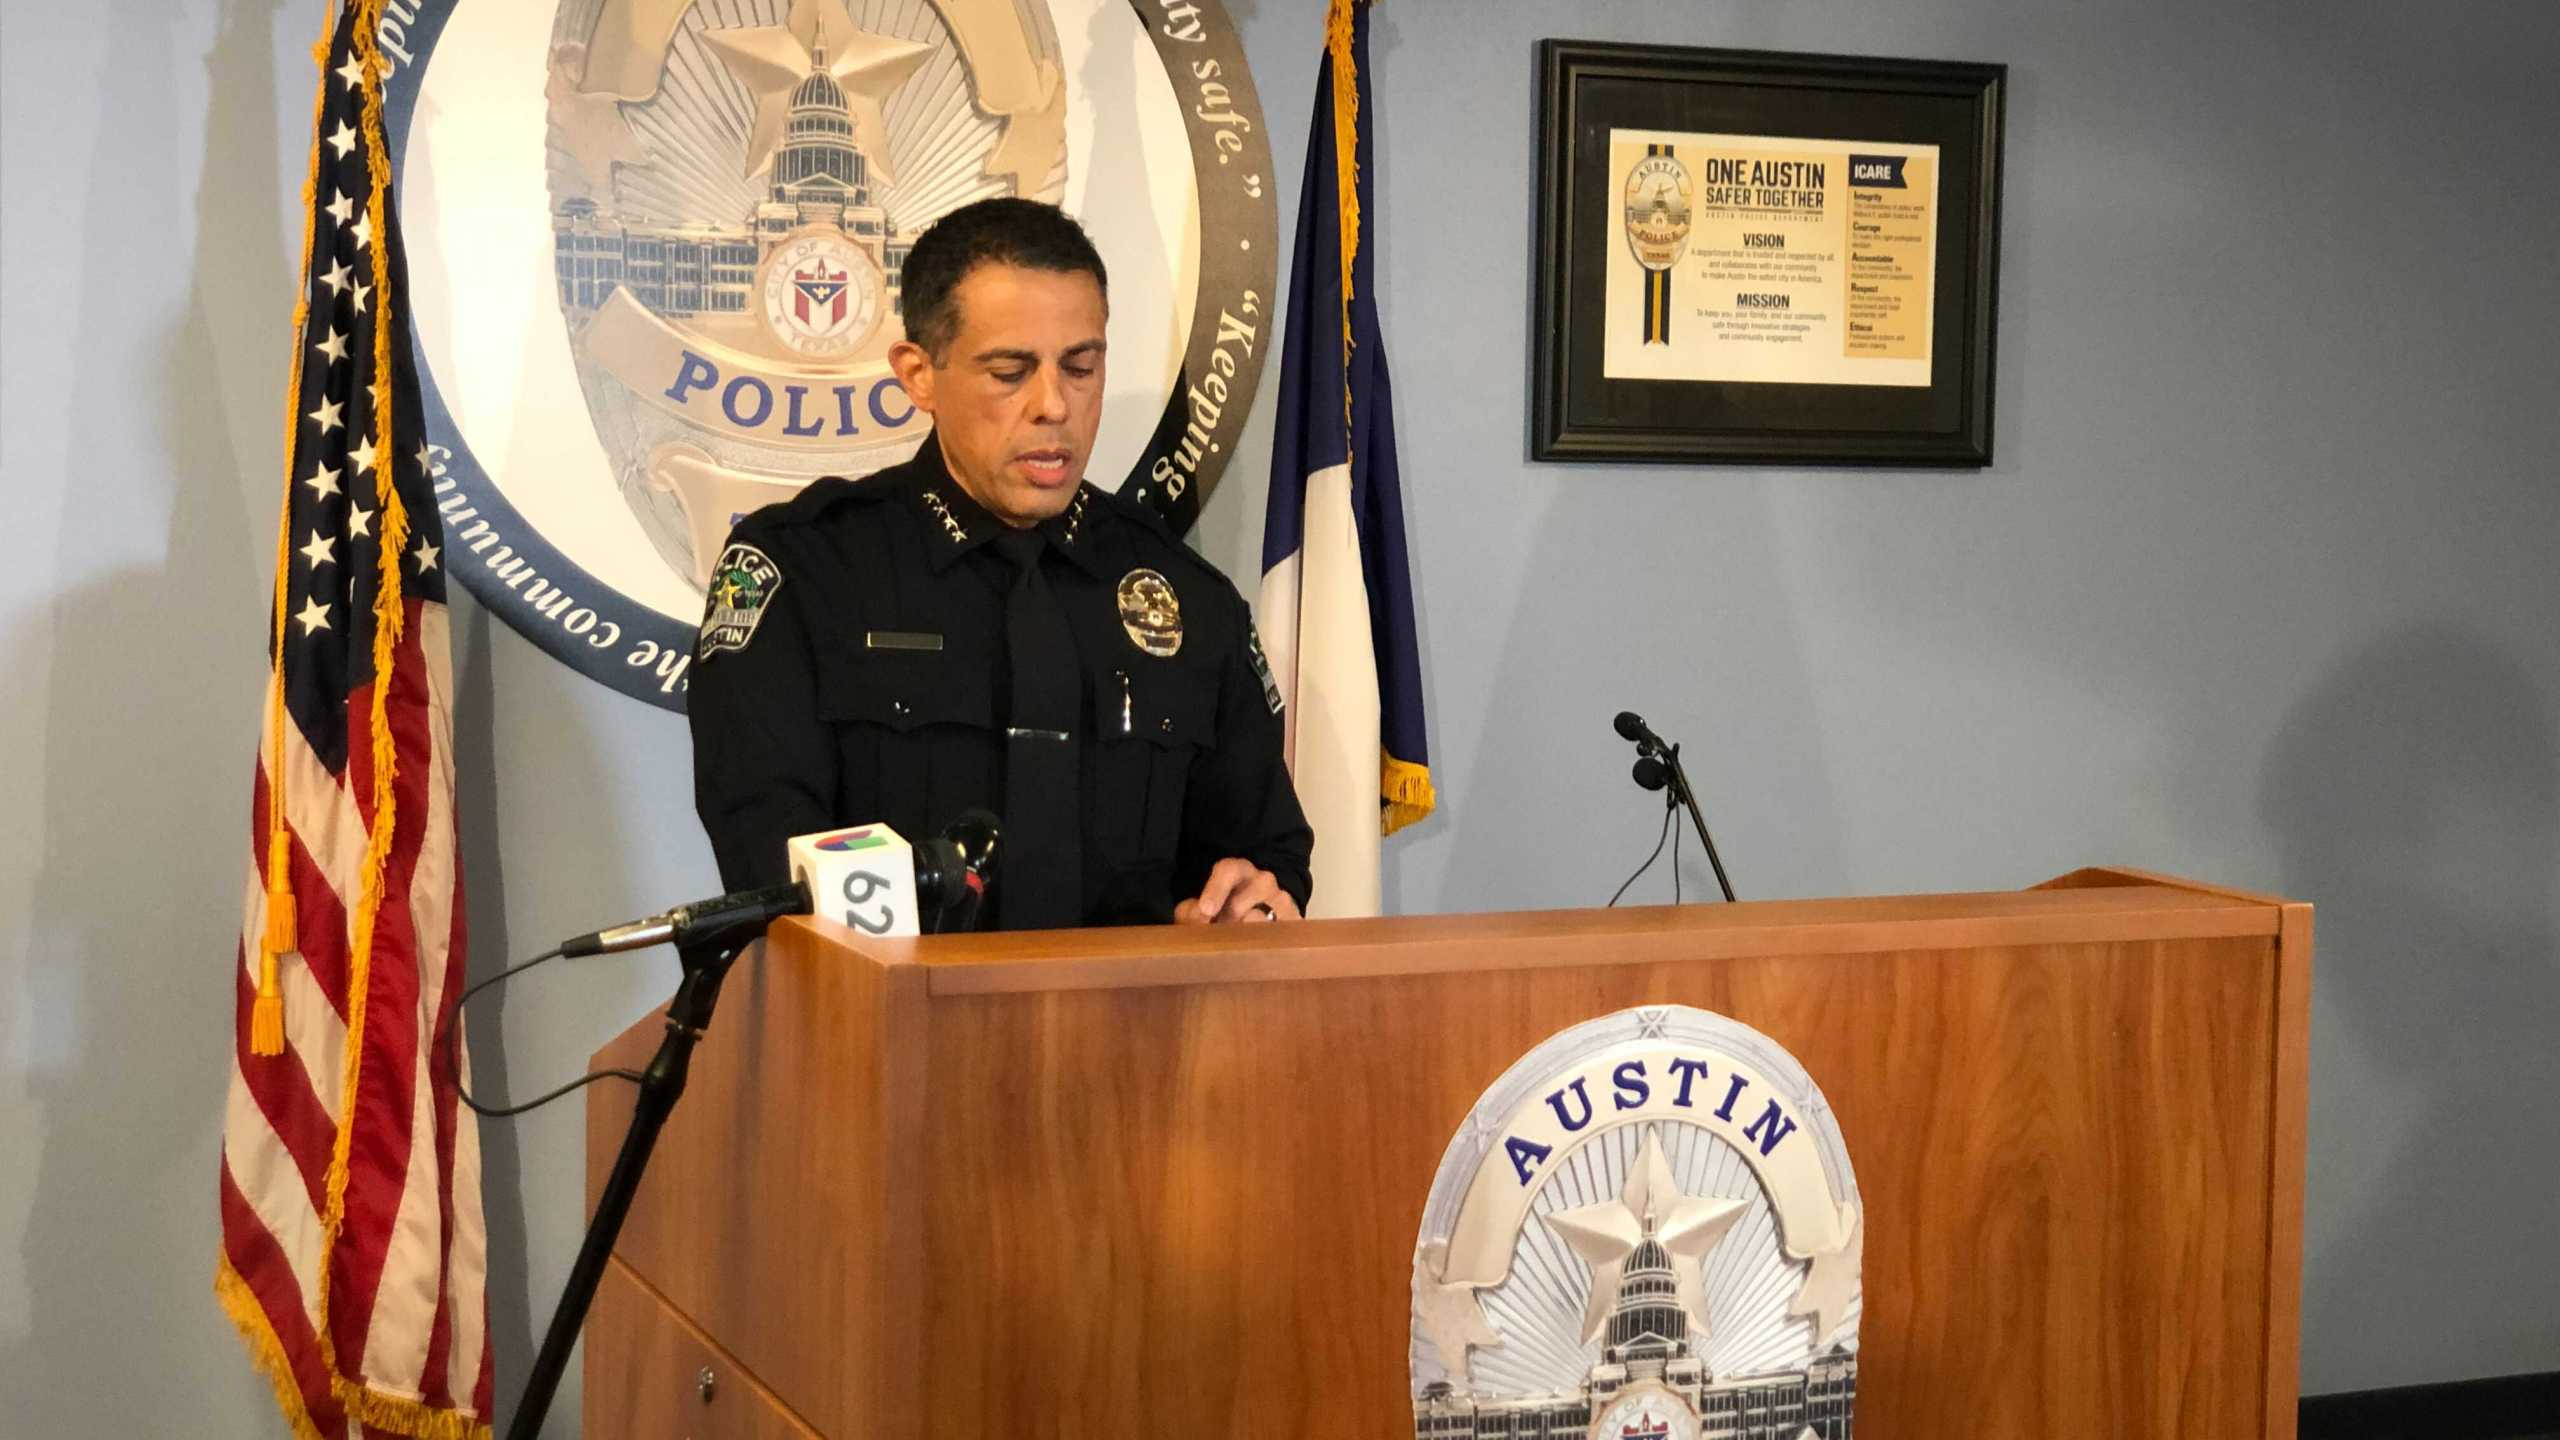 Interim APD Chief Joseph Chacon addresses rising crime in the downtown area and gives an update on the Violence Intervention Program (VIP) that was launched in April 2021 (KXAN Photo/Chris Nelson)